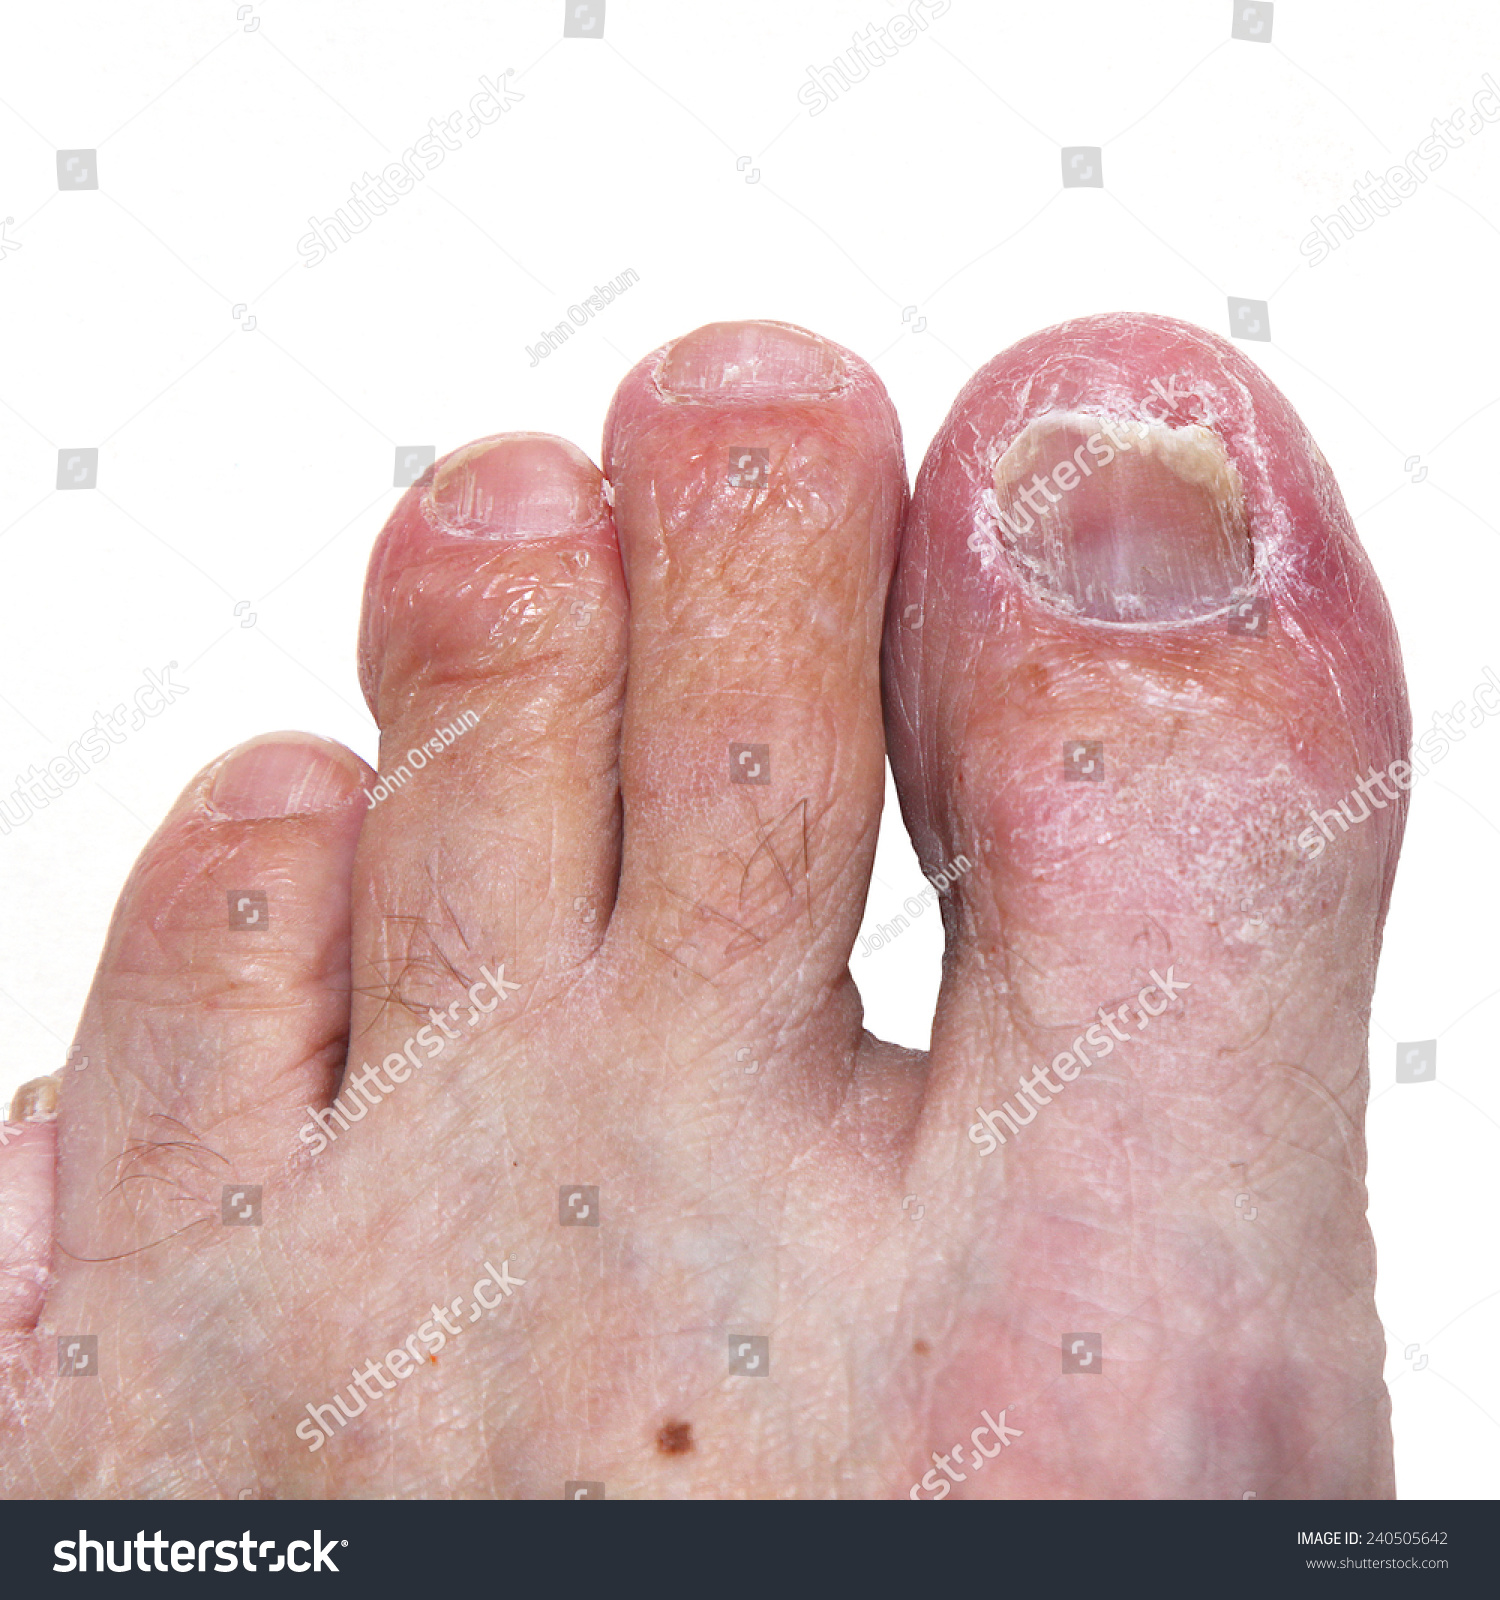 A Moderate To Severe Case Of Athletes Foot (Tinea Pedis